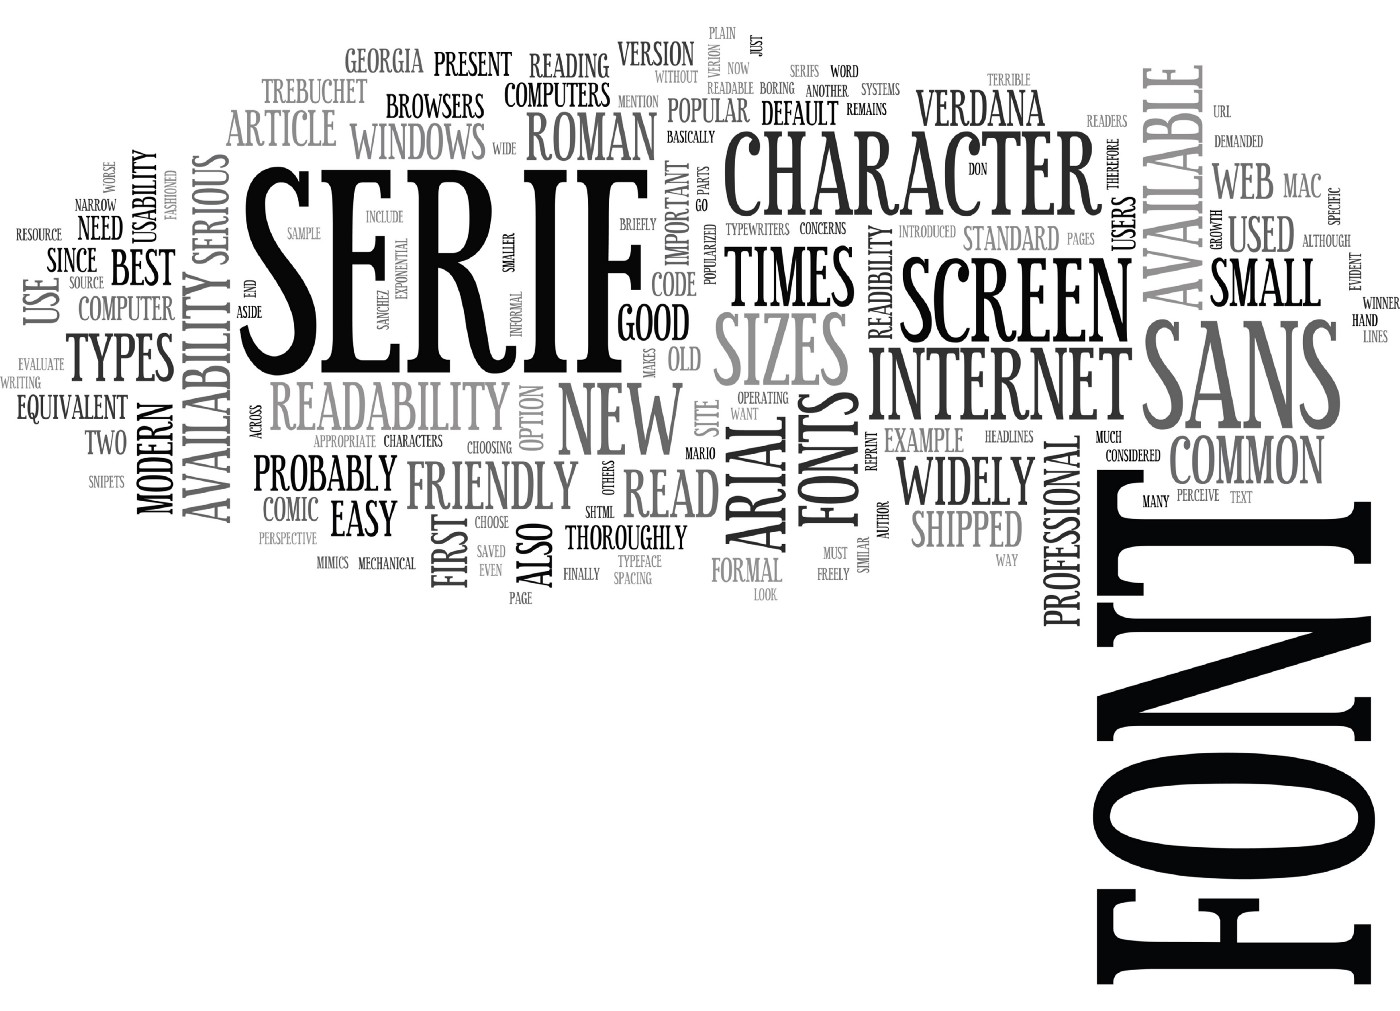 A collage of various word relating to fonts and typing (font, Serif, Verdana, Size, Text, Arial, Characters, etc.)